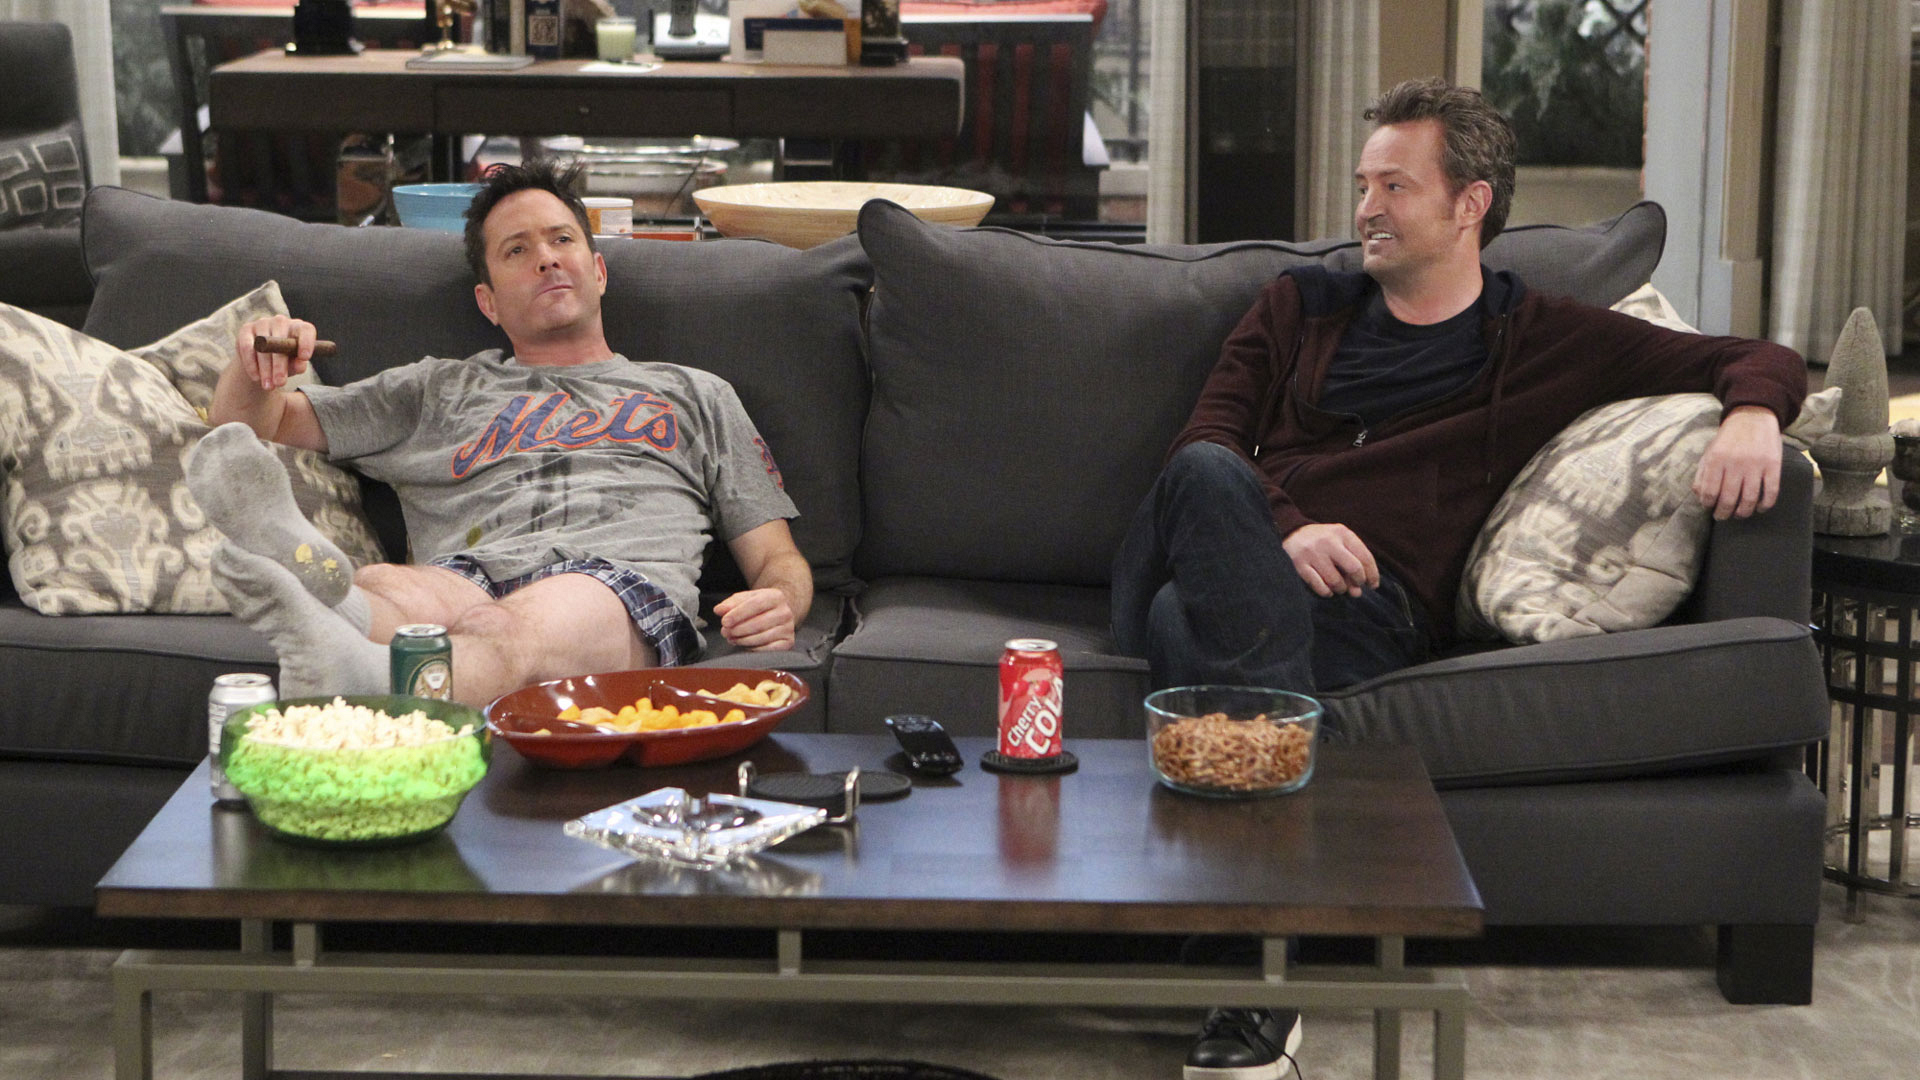 We're itching for hilarious interactions between Felix and Oscar on The Odd Couple.